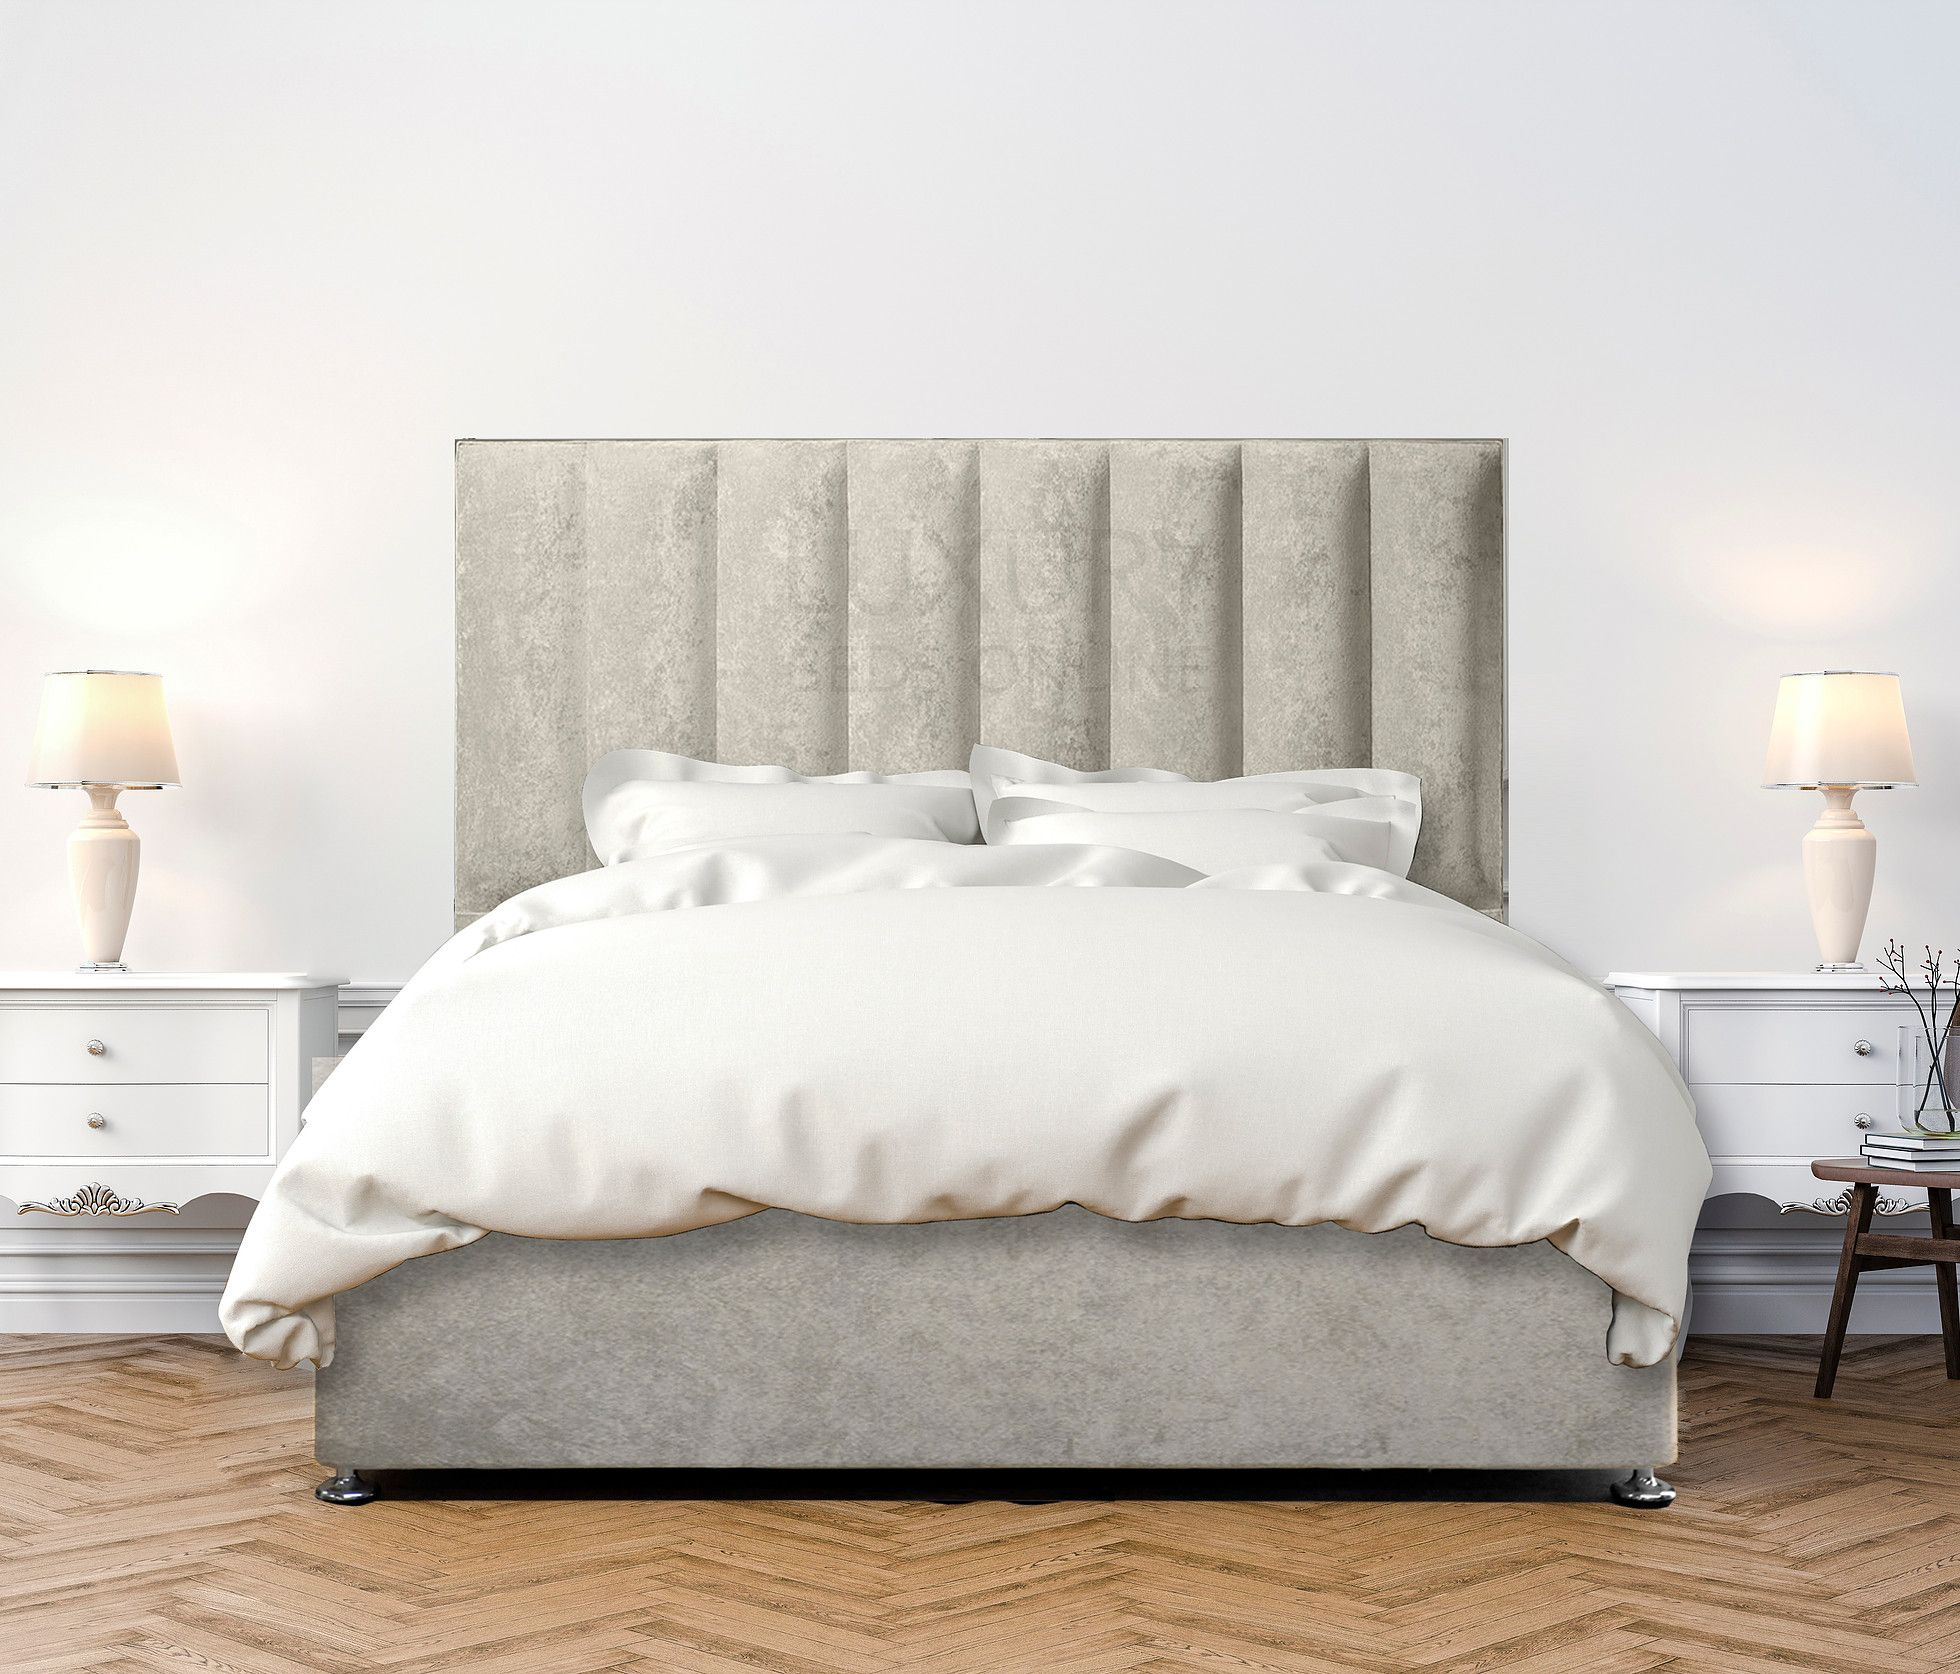 Stapelbett Cairo Luxury Beds Elegant Upholstered Chesterfield Beds Luxury Beds